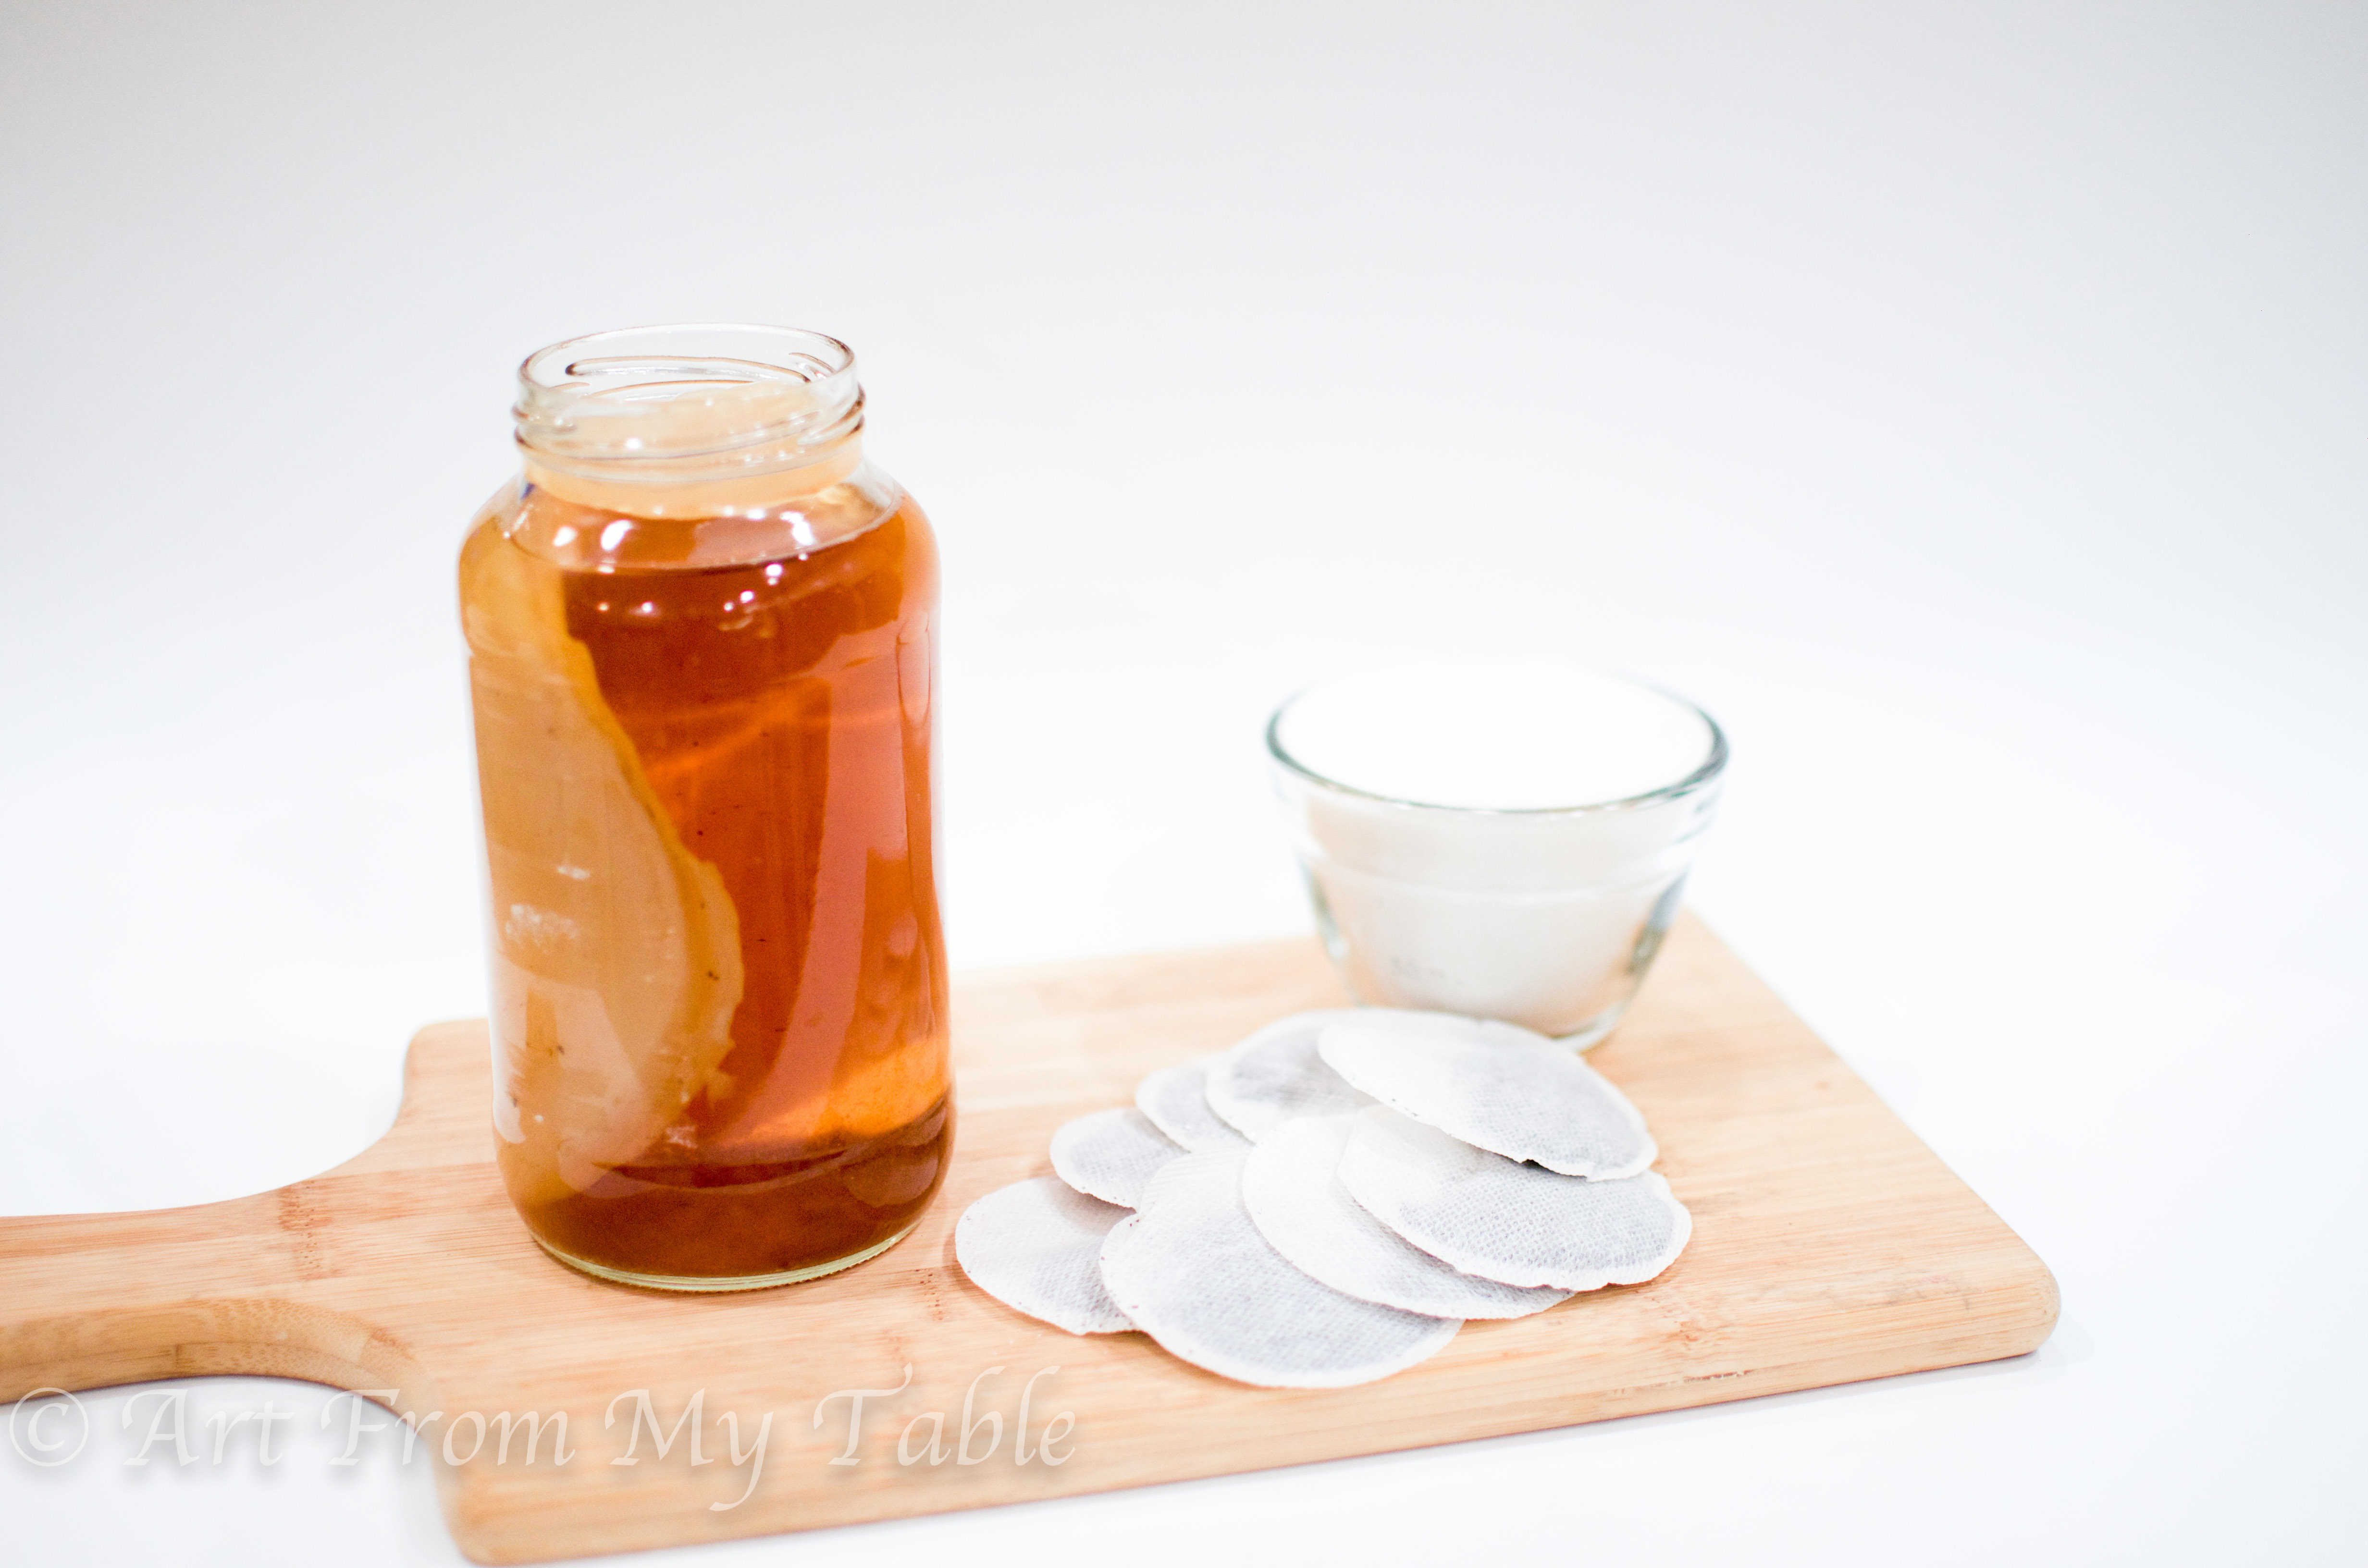 Ingredients for Kombucha: jar of starter tea with a SCOBY in it, black tea bags, and sugar.